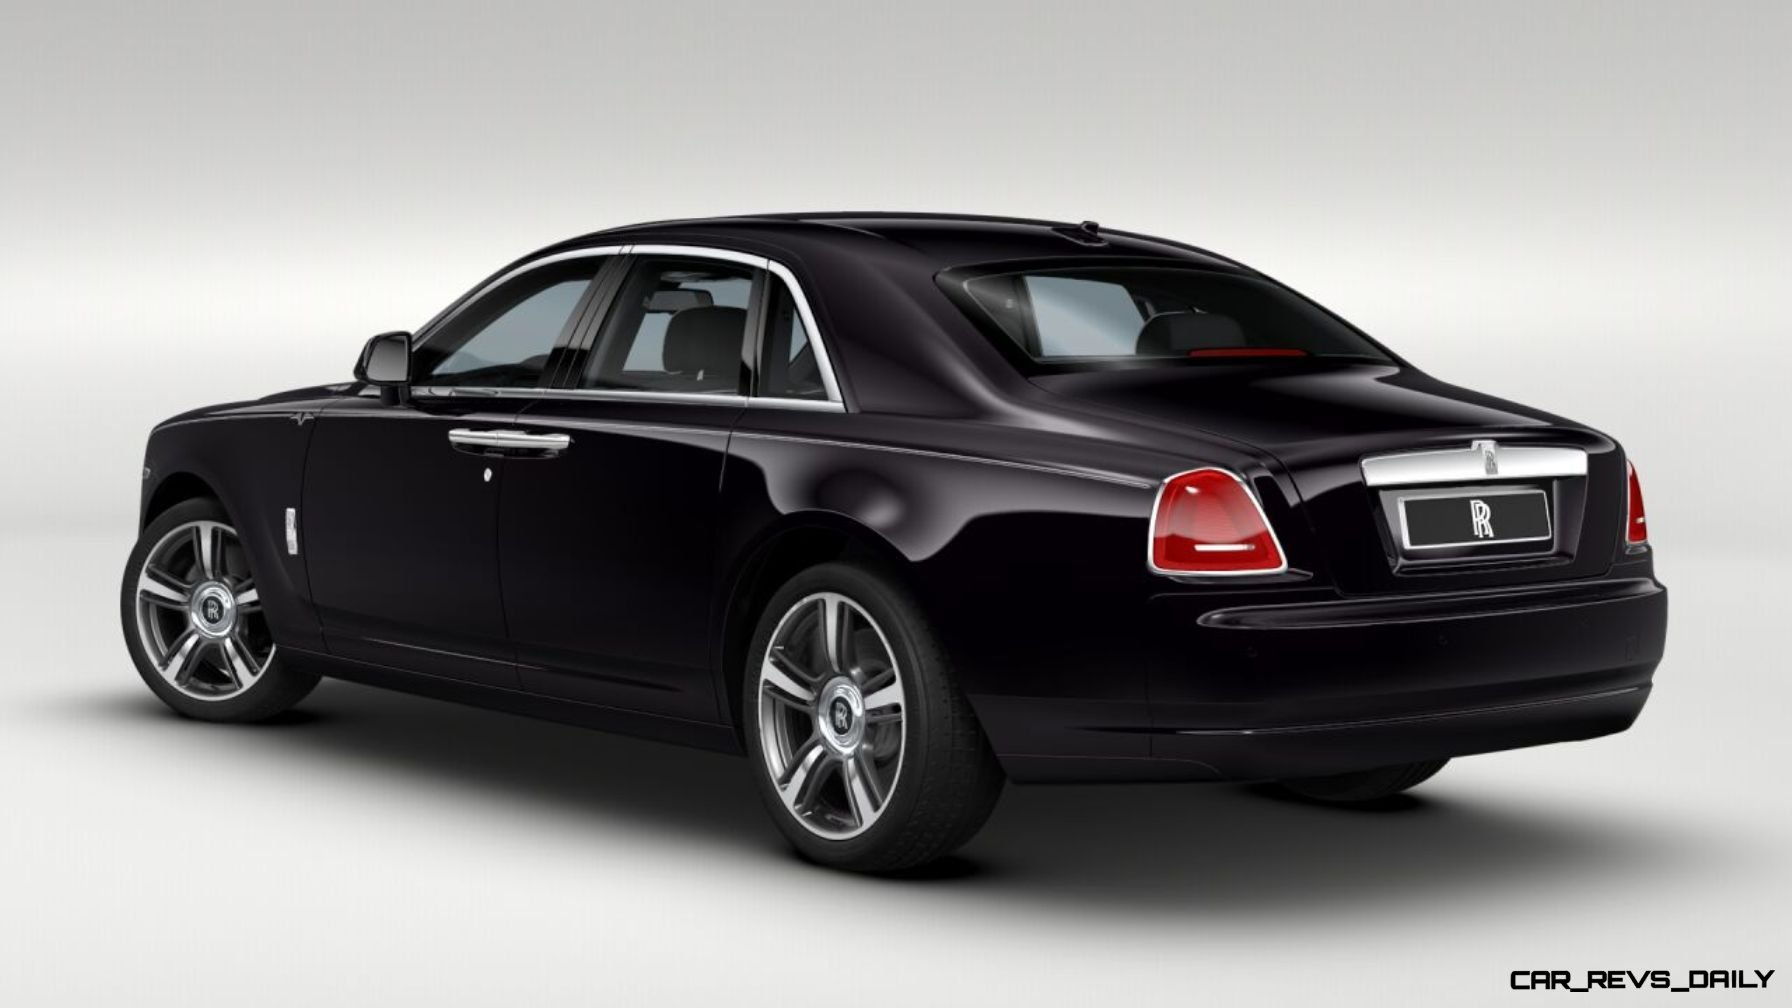 2014 Rolls-Royce Ghost V-Spec Adds Power + Dark Glamour to SWB and